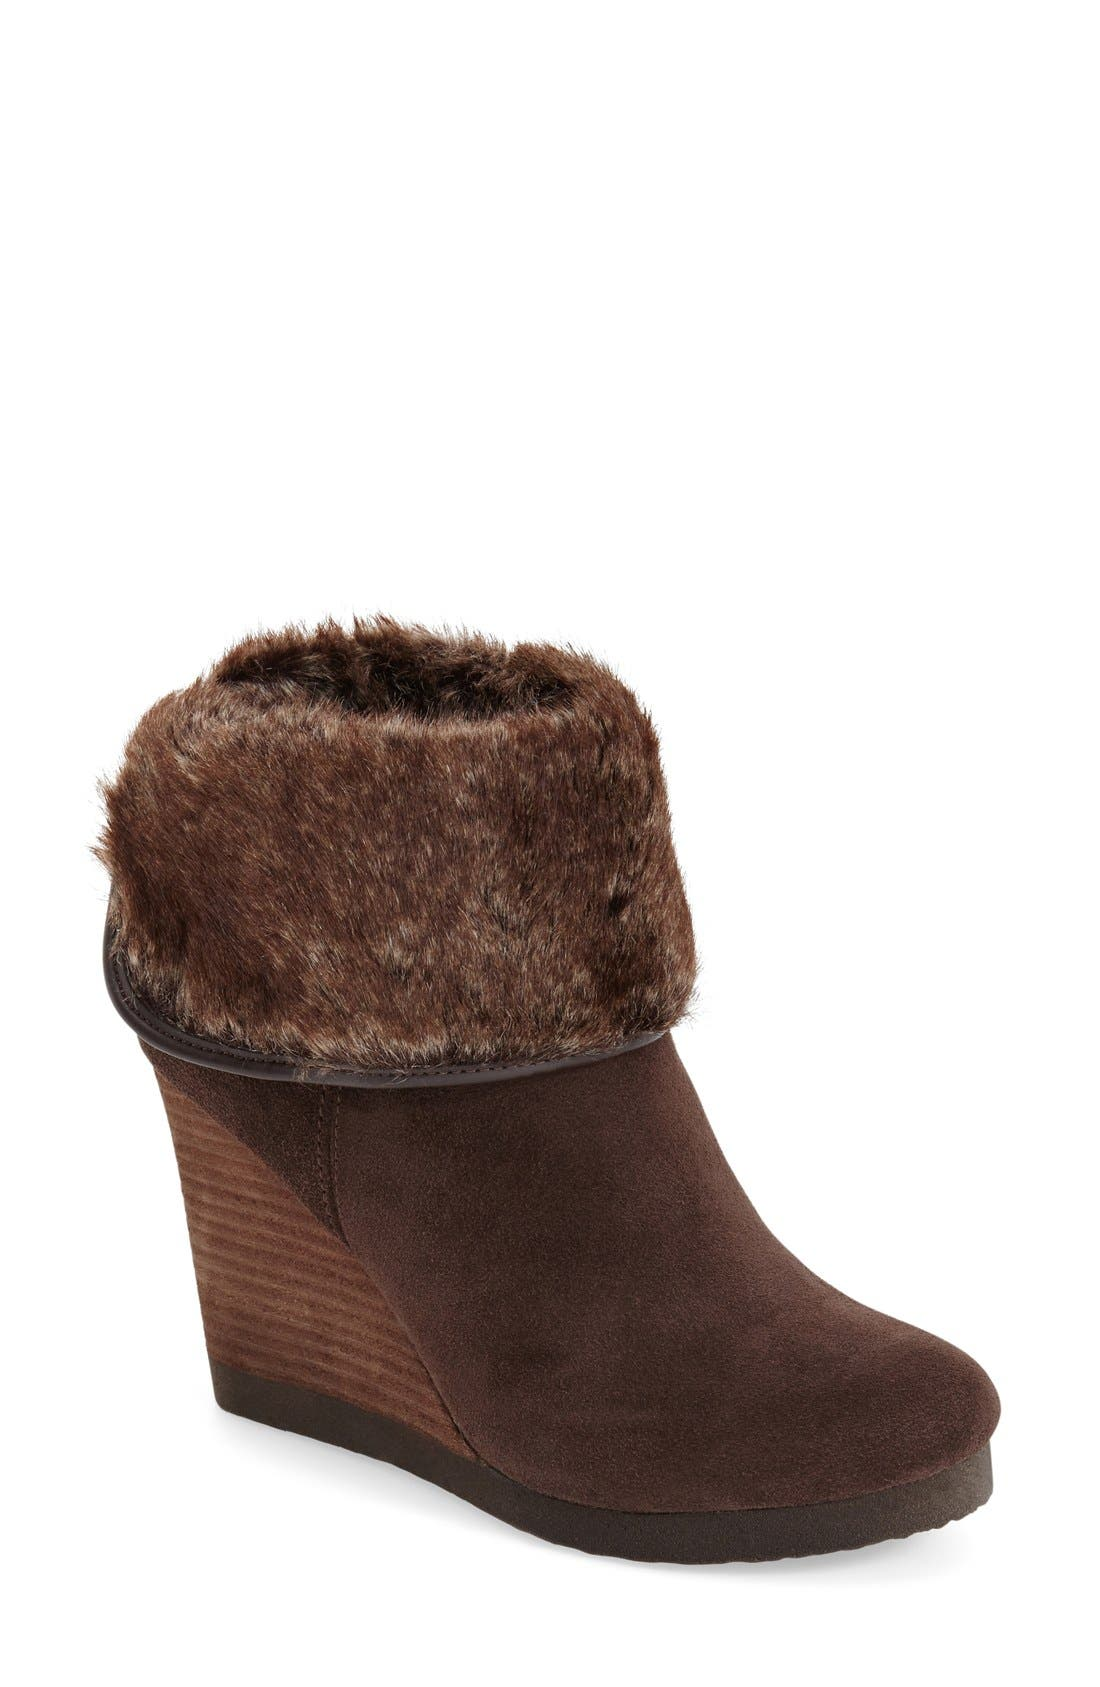 Main Image - Lucky Brand 'Torynn' Wedge Bootie